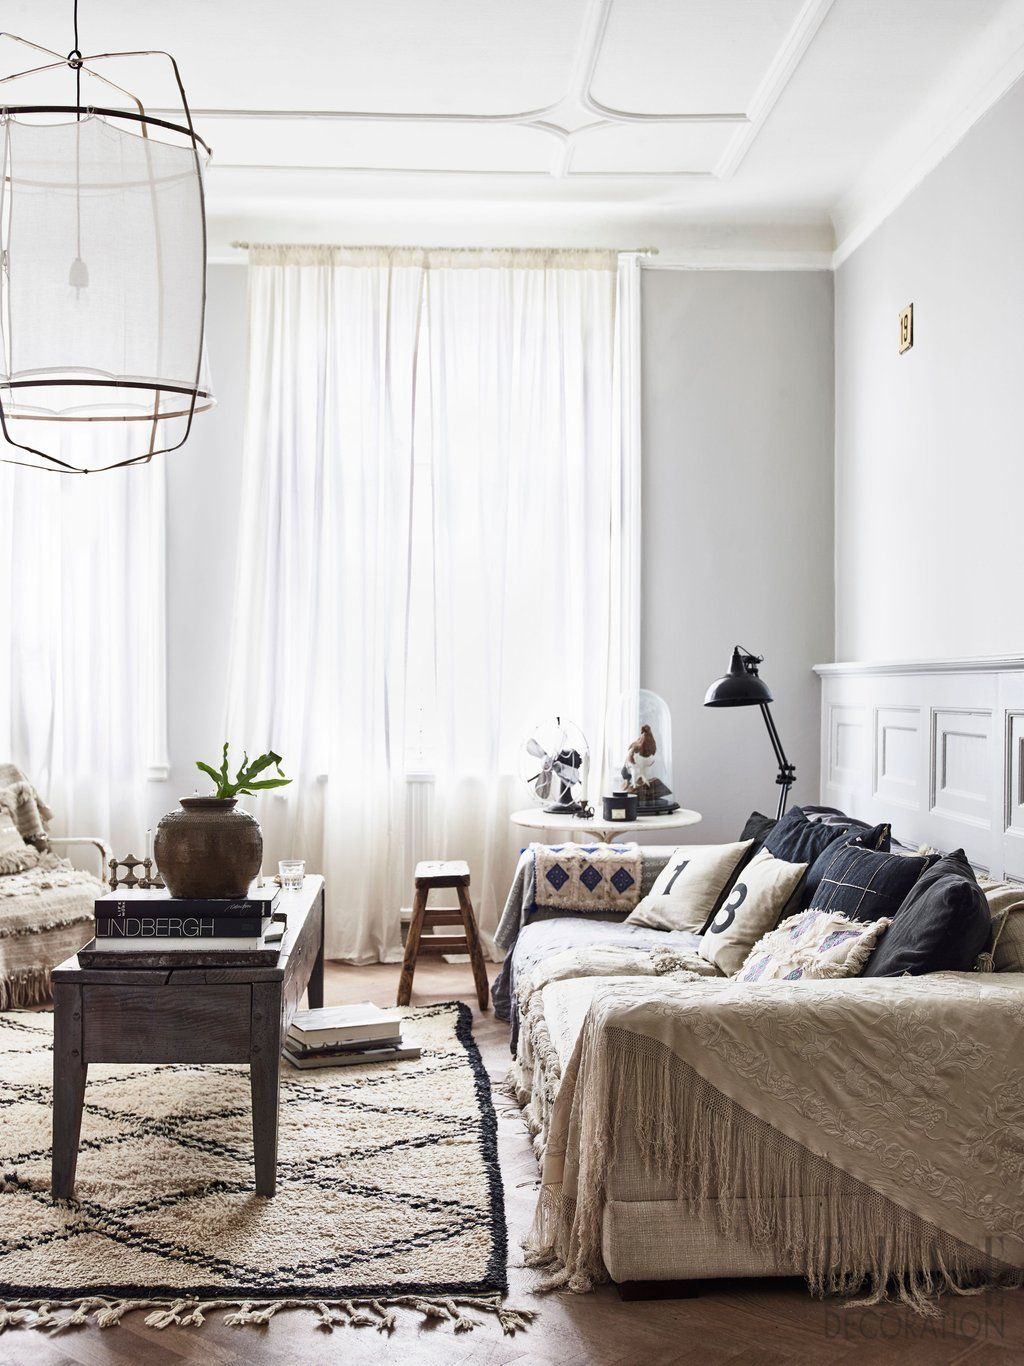 """ELLE Decoration UK on Twitter: """"'I tend to keep objects because they have memories attached to them.'  Our carefully curated Malmo home. #EDUKFeb16 https://t.co/8YbFAhdqaR"""""""